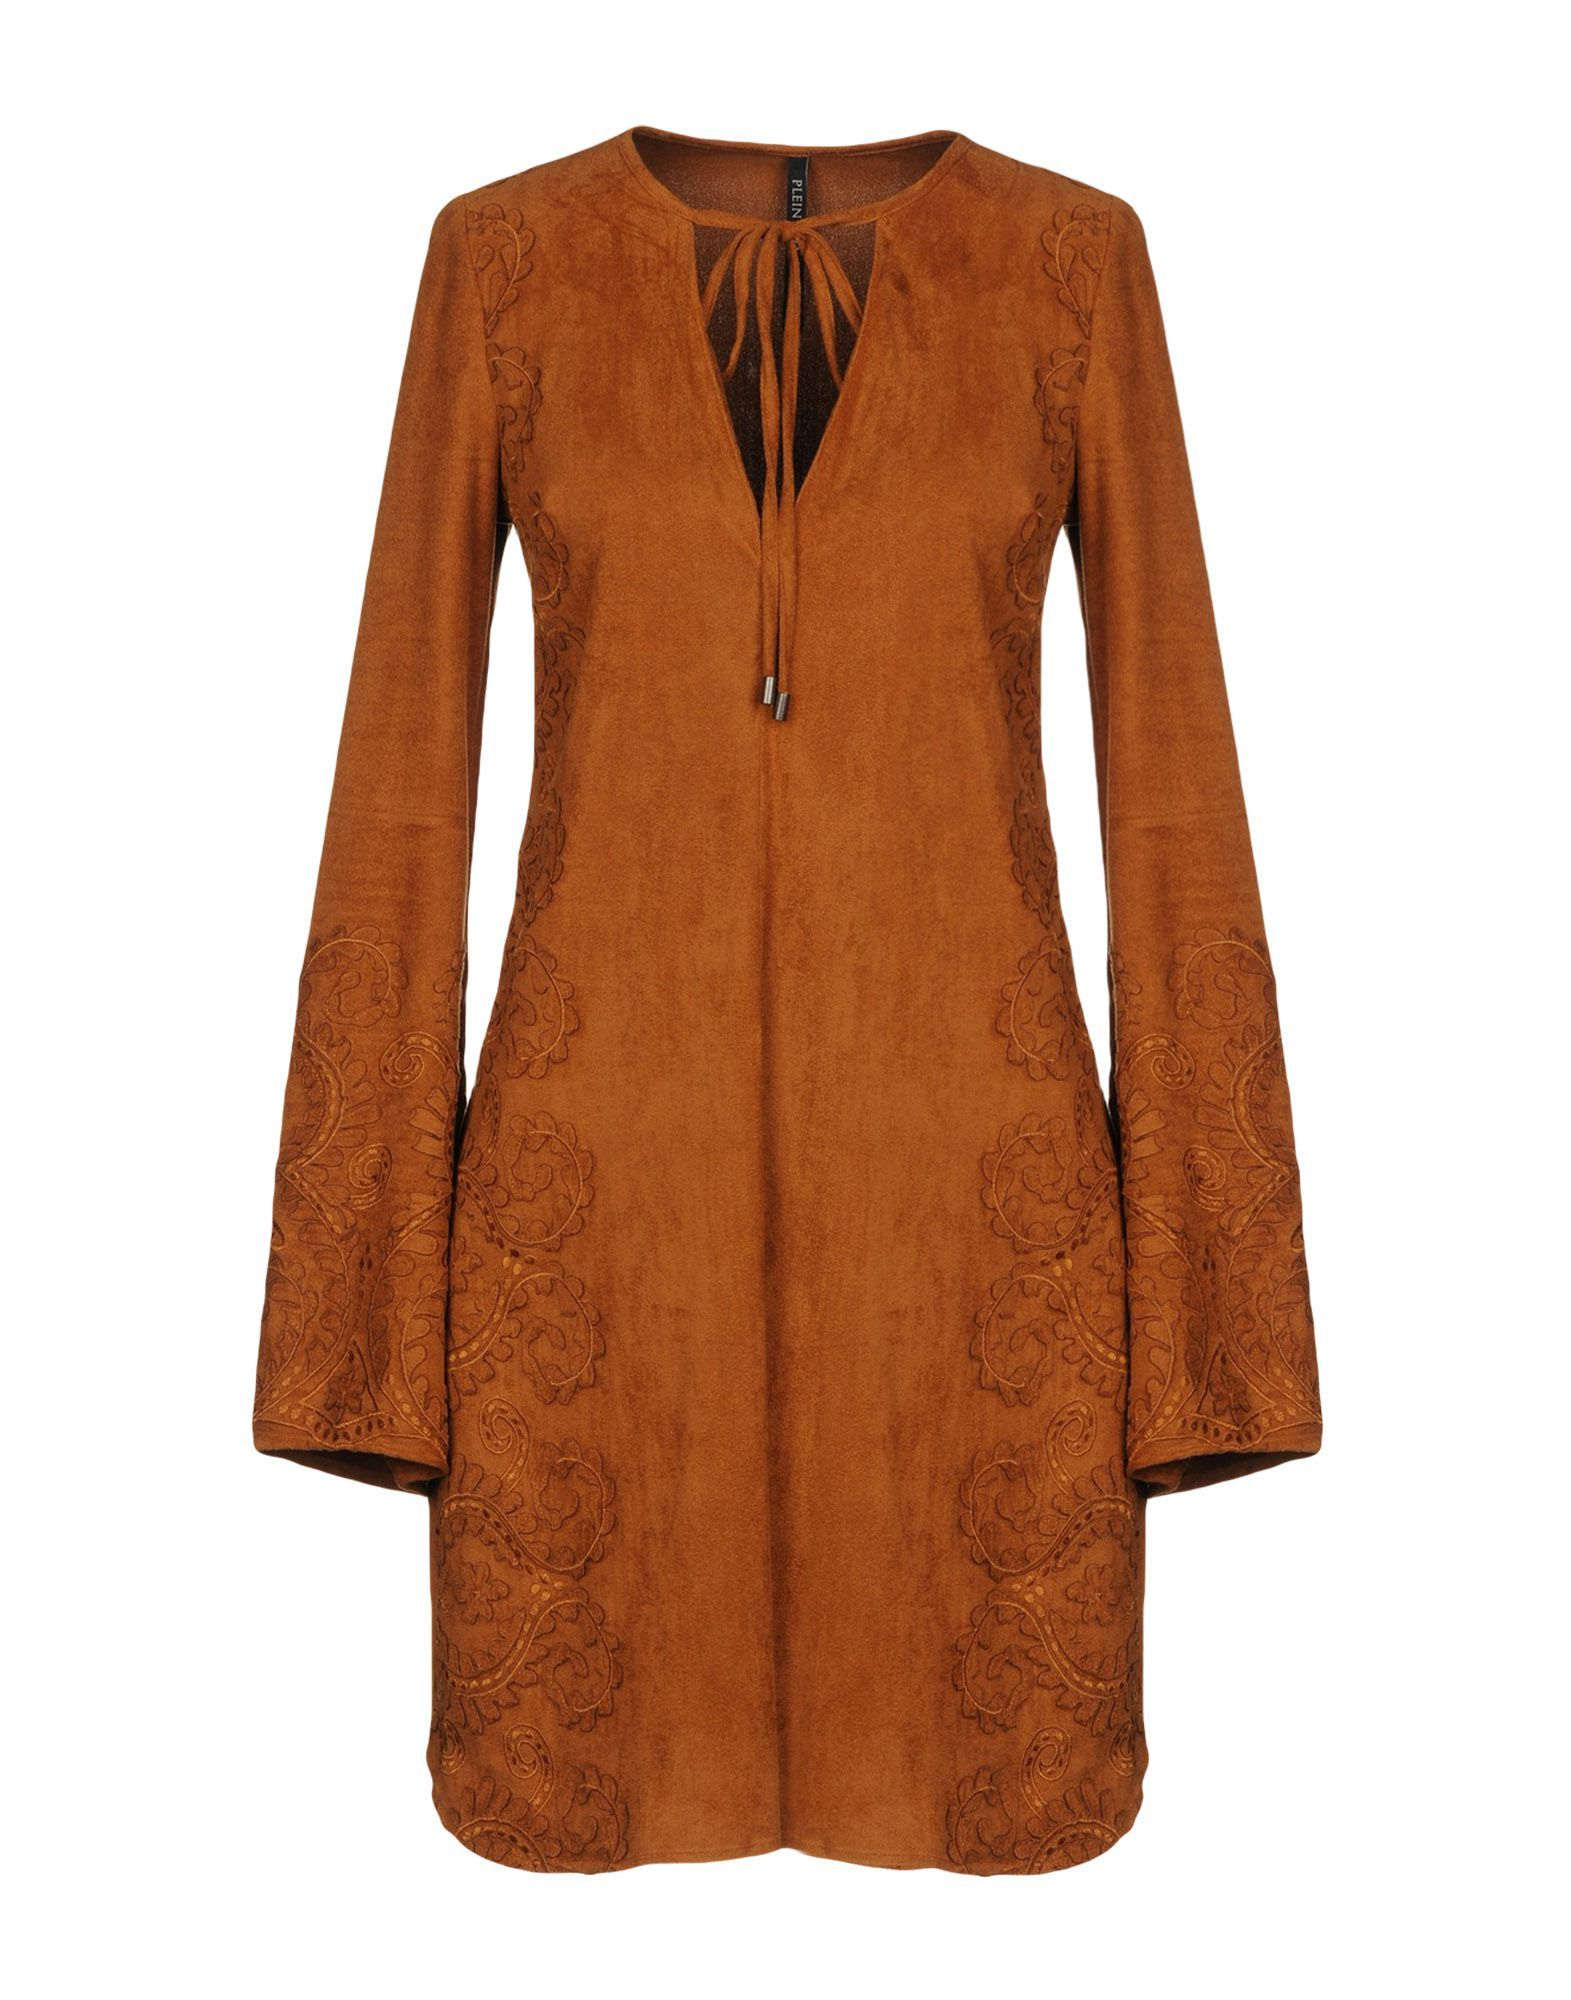 Plein Sud Brown Embroidered Long Sleeve Dress